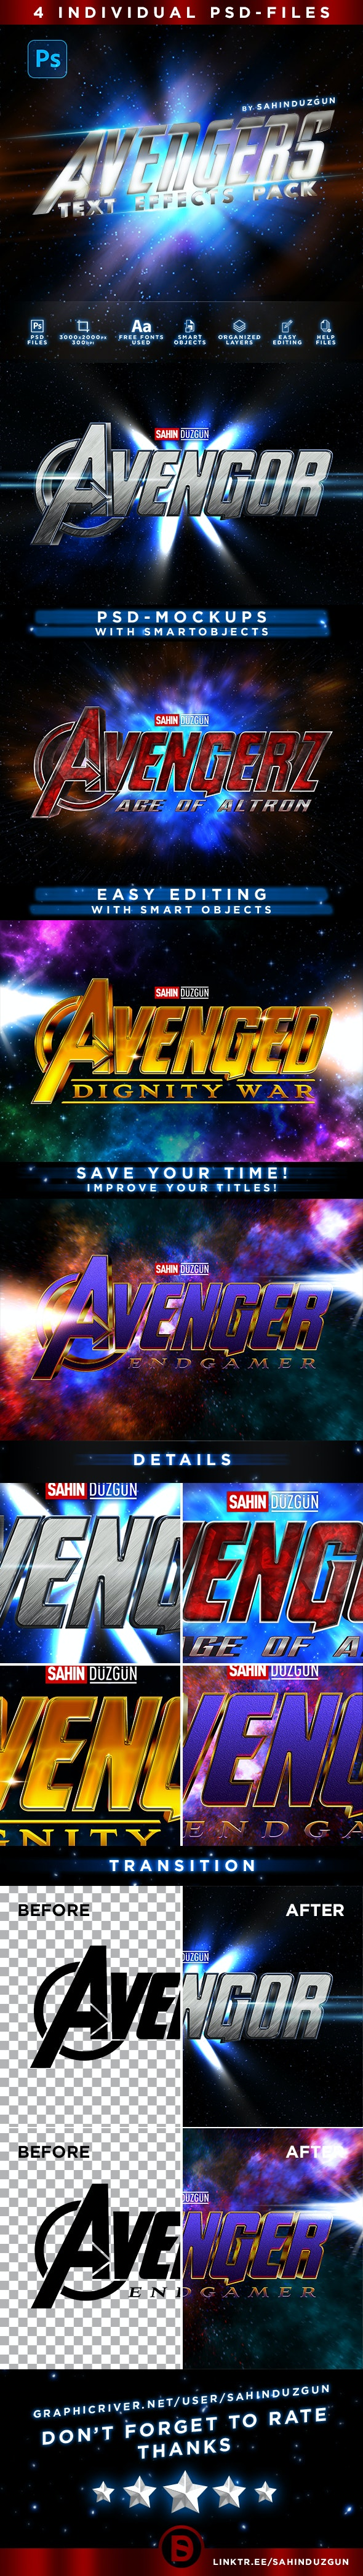 AVENGERS | Text-Effects/Mockups | Template-Package - Text Effects Actions